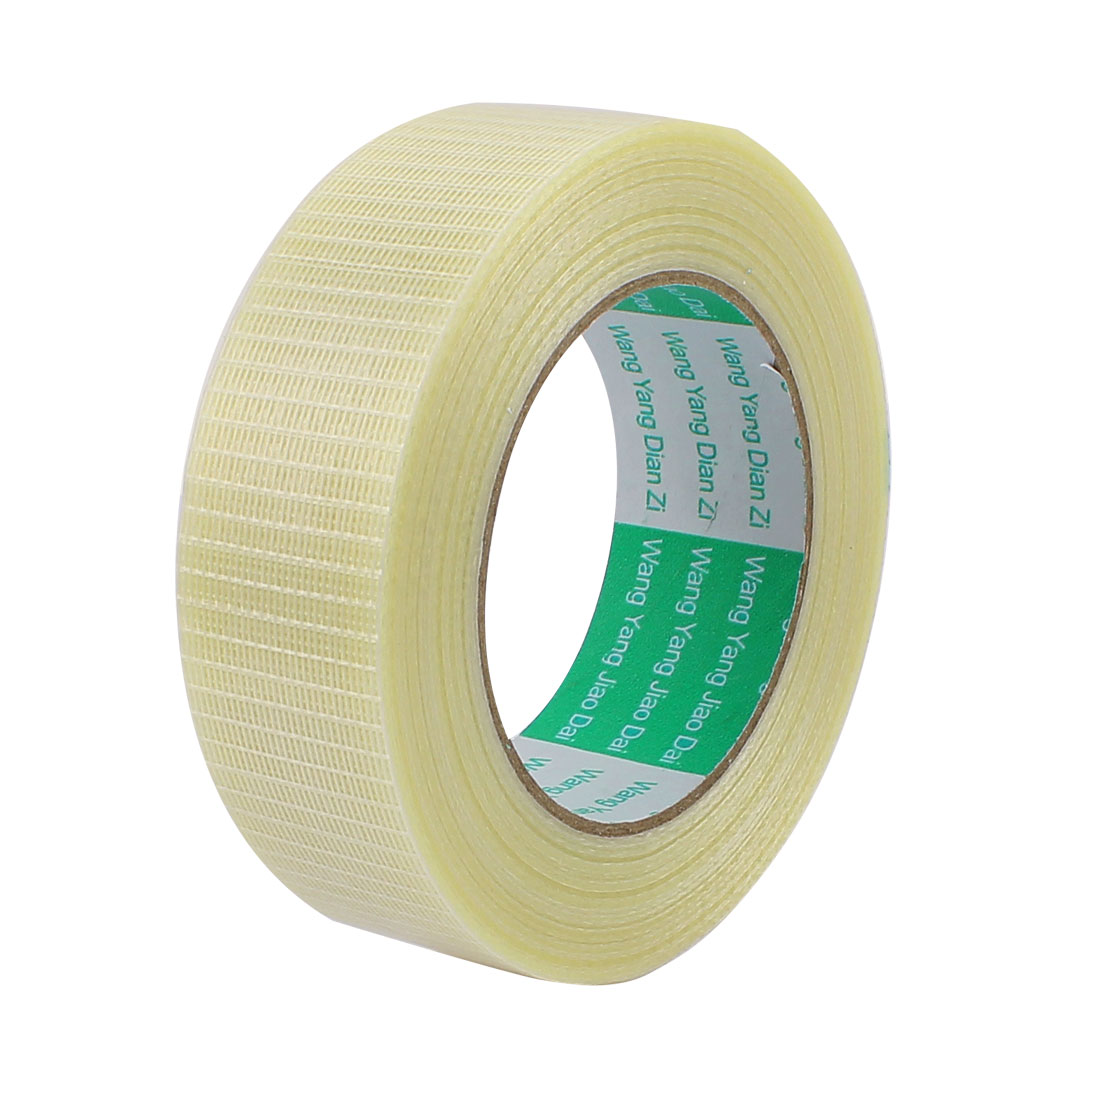 30mm Height 50M Length Long Adhesive Insulating Grid Glass Fiber Tape Roll